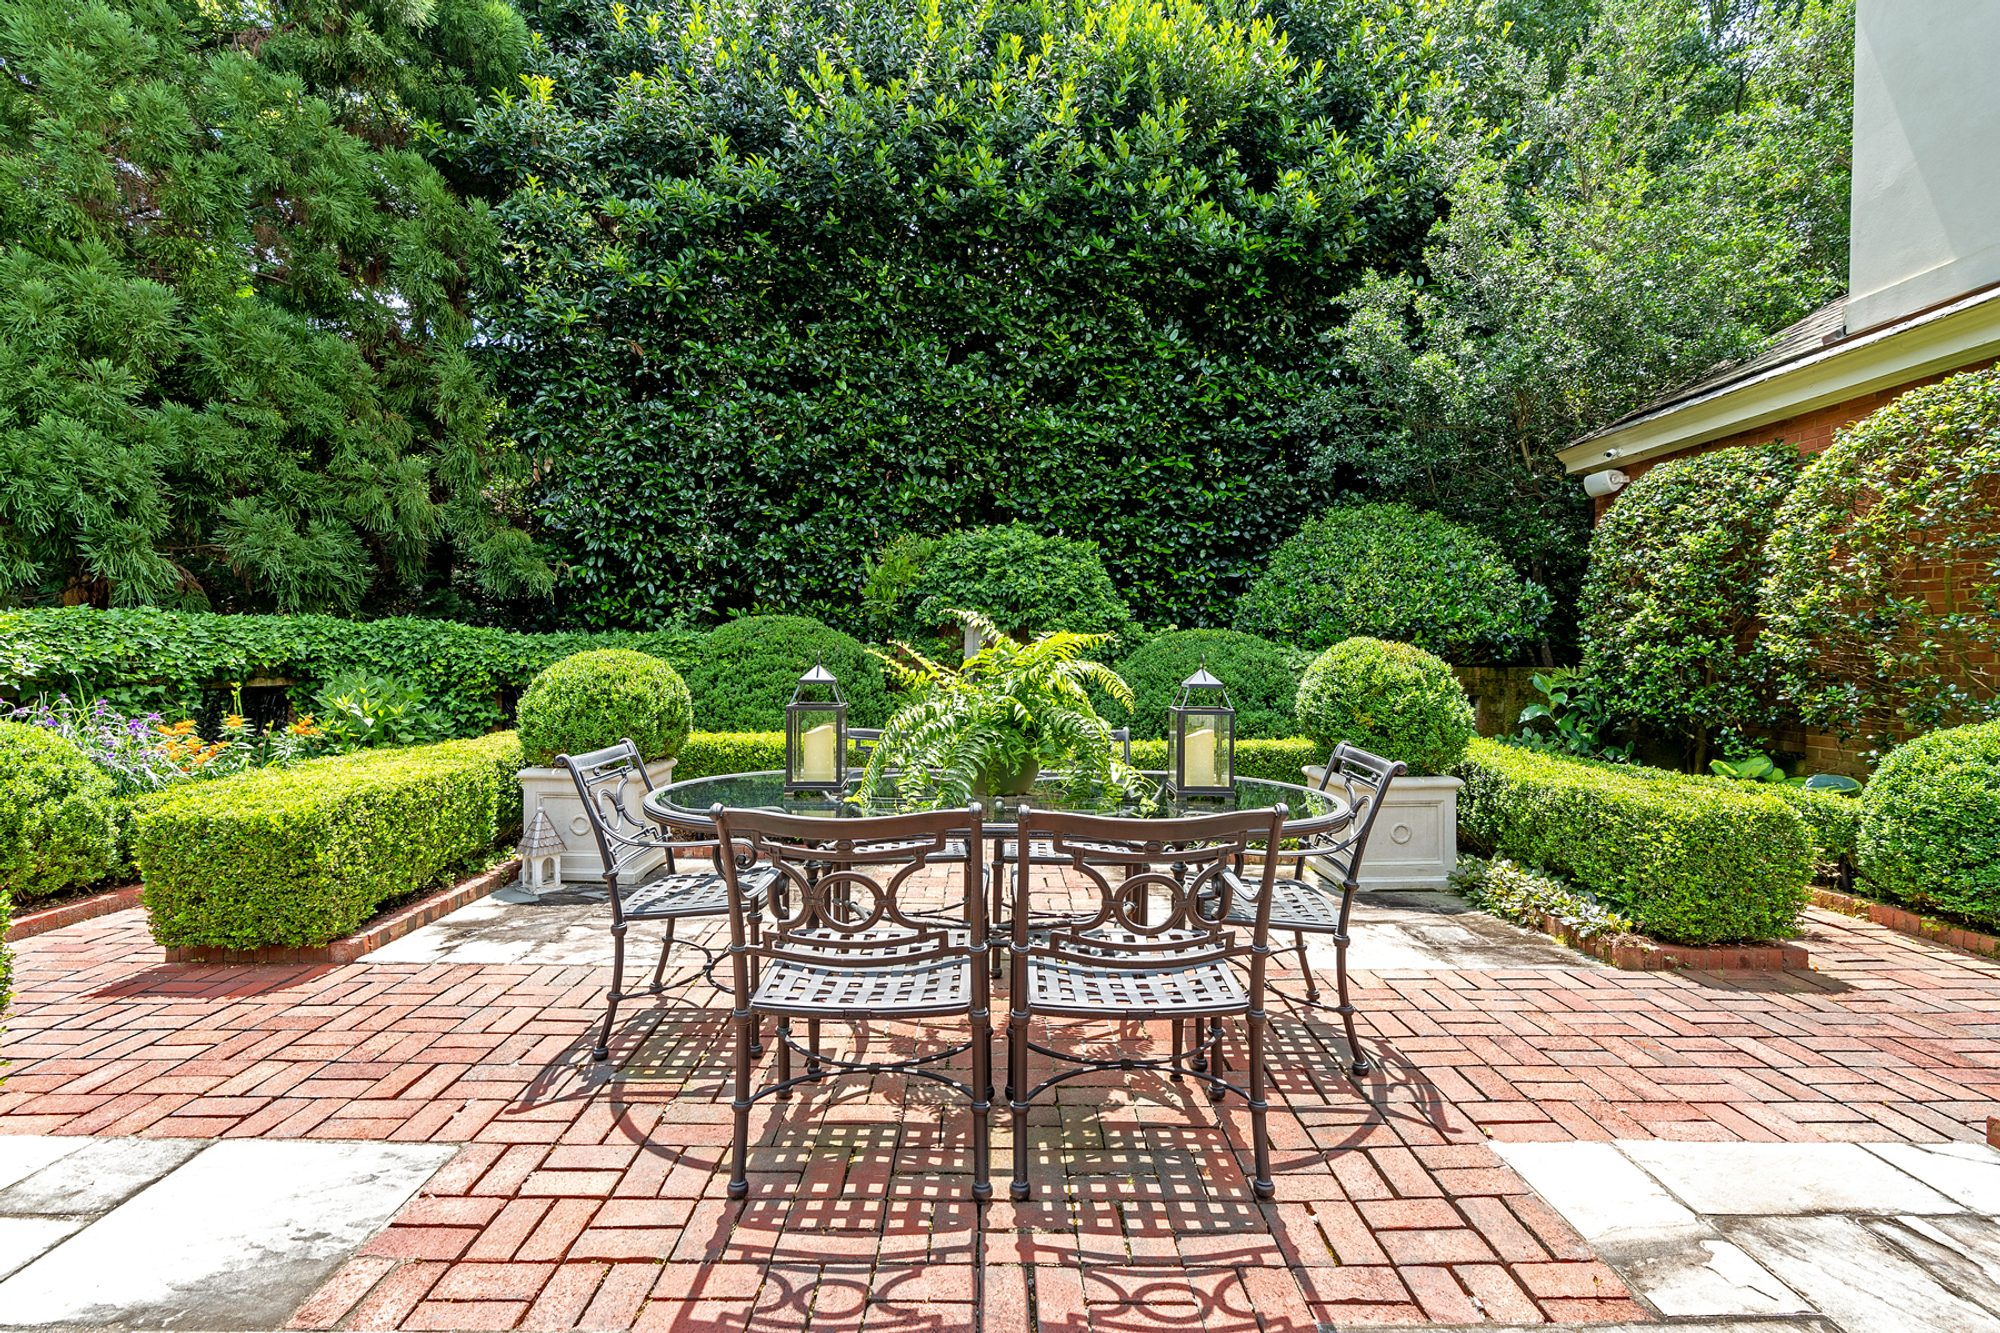 Red Brick Patio Ideas | DIY Paver Designs & Pictues on Red Paver Patio Ideas id=42707